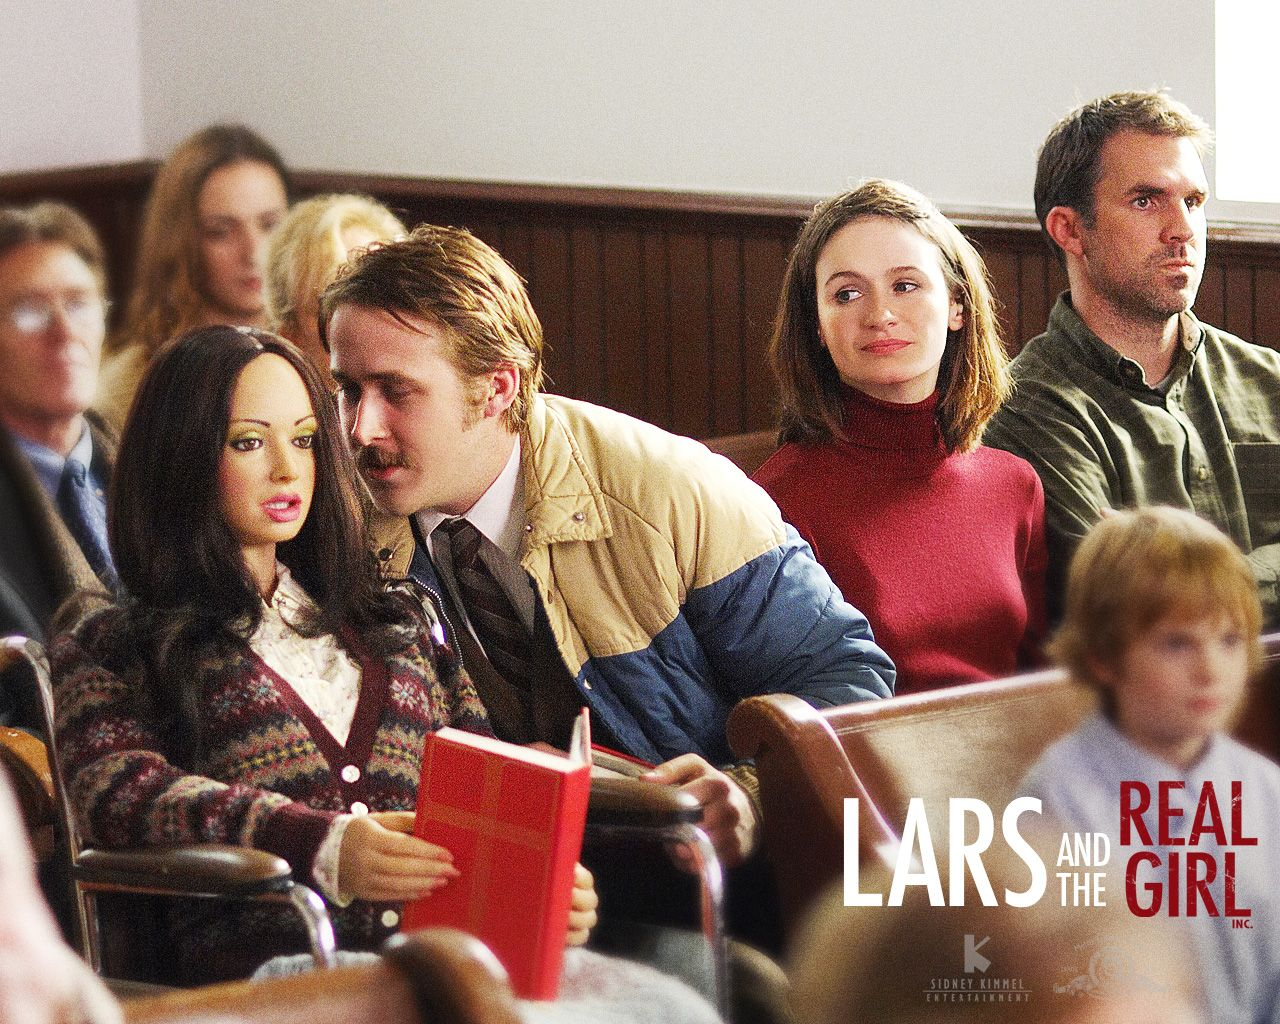 Lars (Ryan Gosling) and the Real Girl in Church